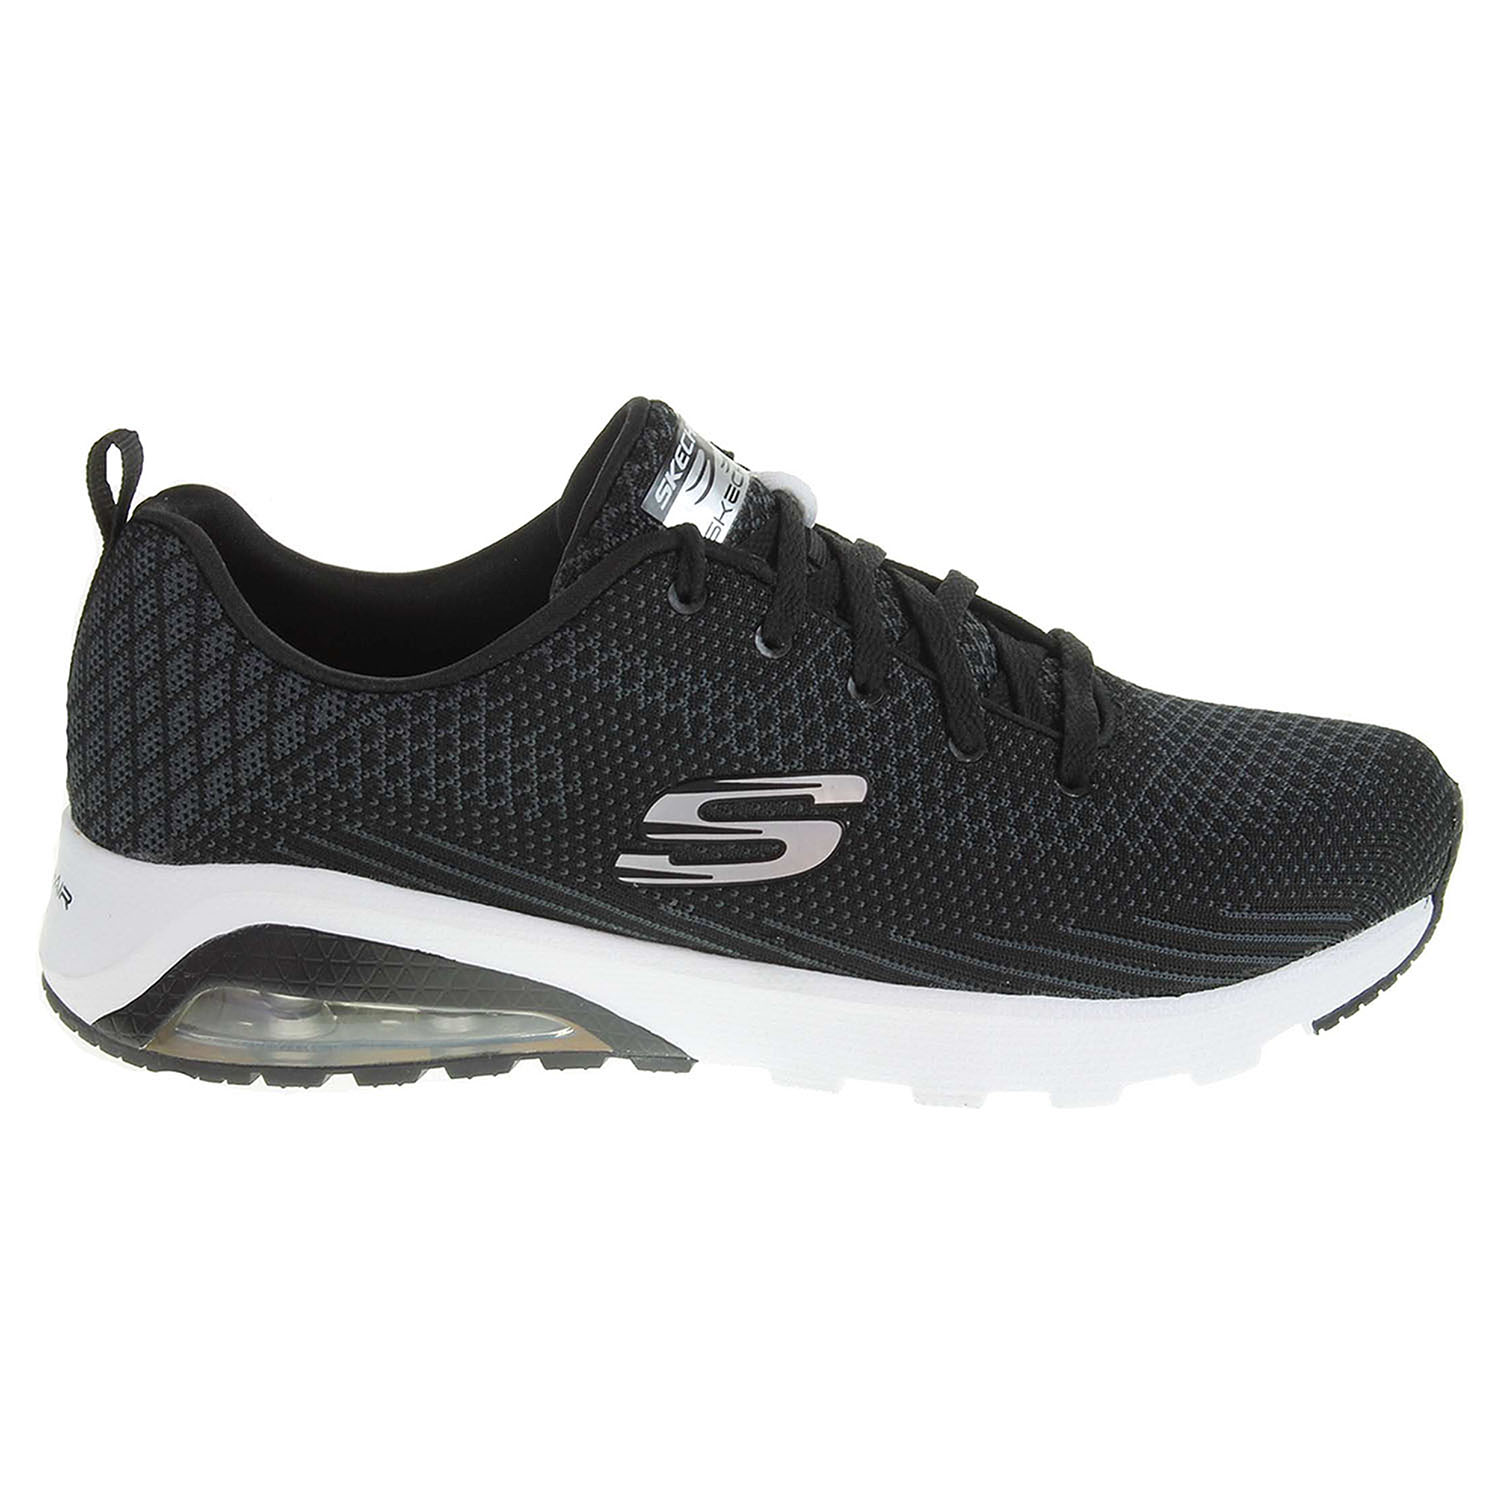 Ecco Skechers Skech-Air Extreme Awaken black-white 23900177